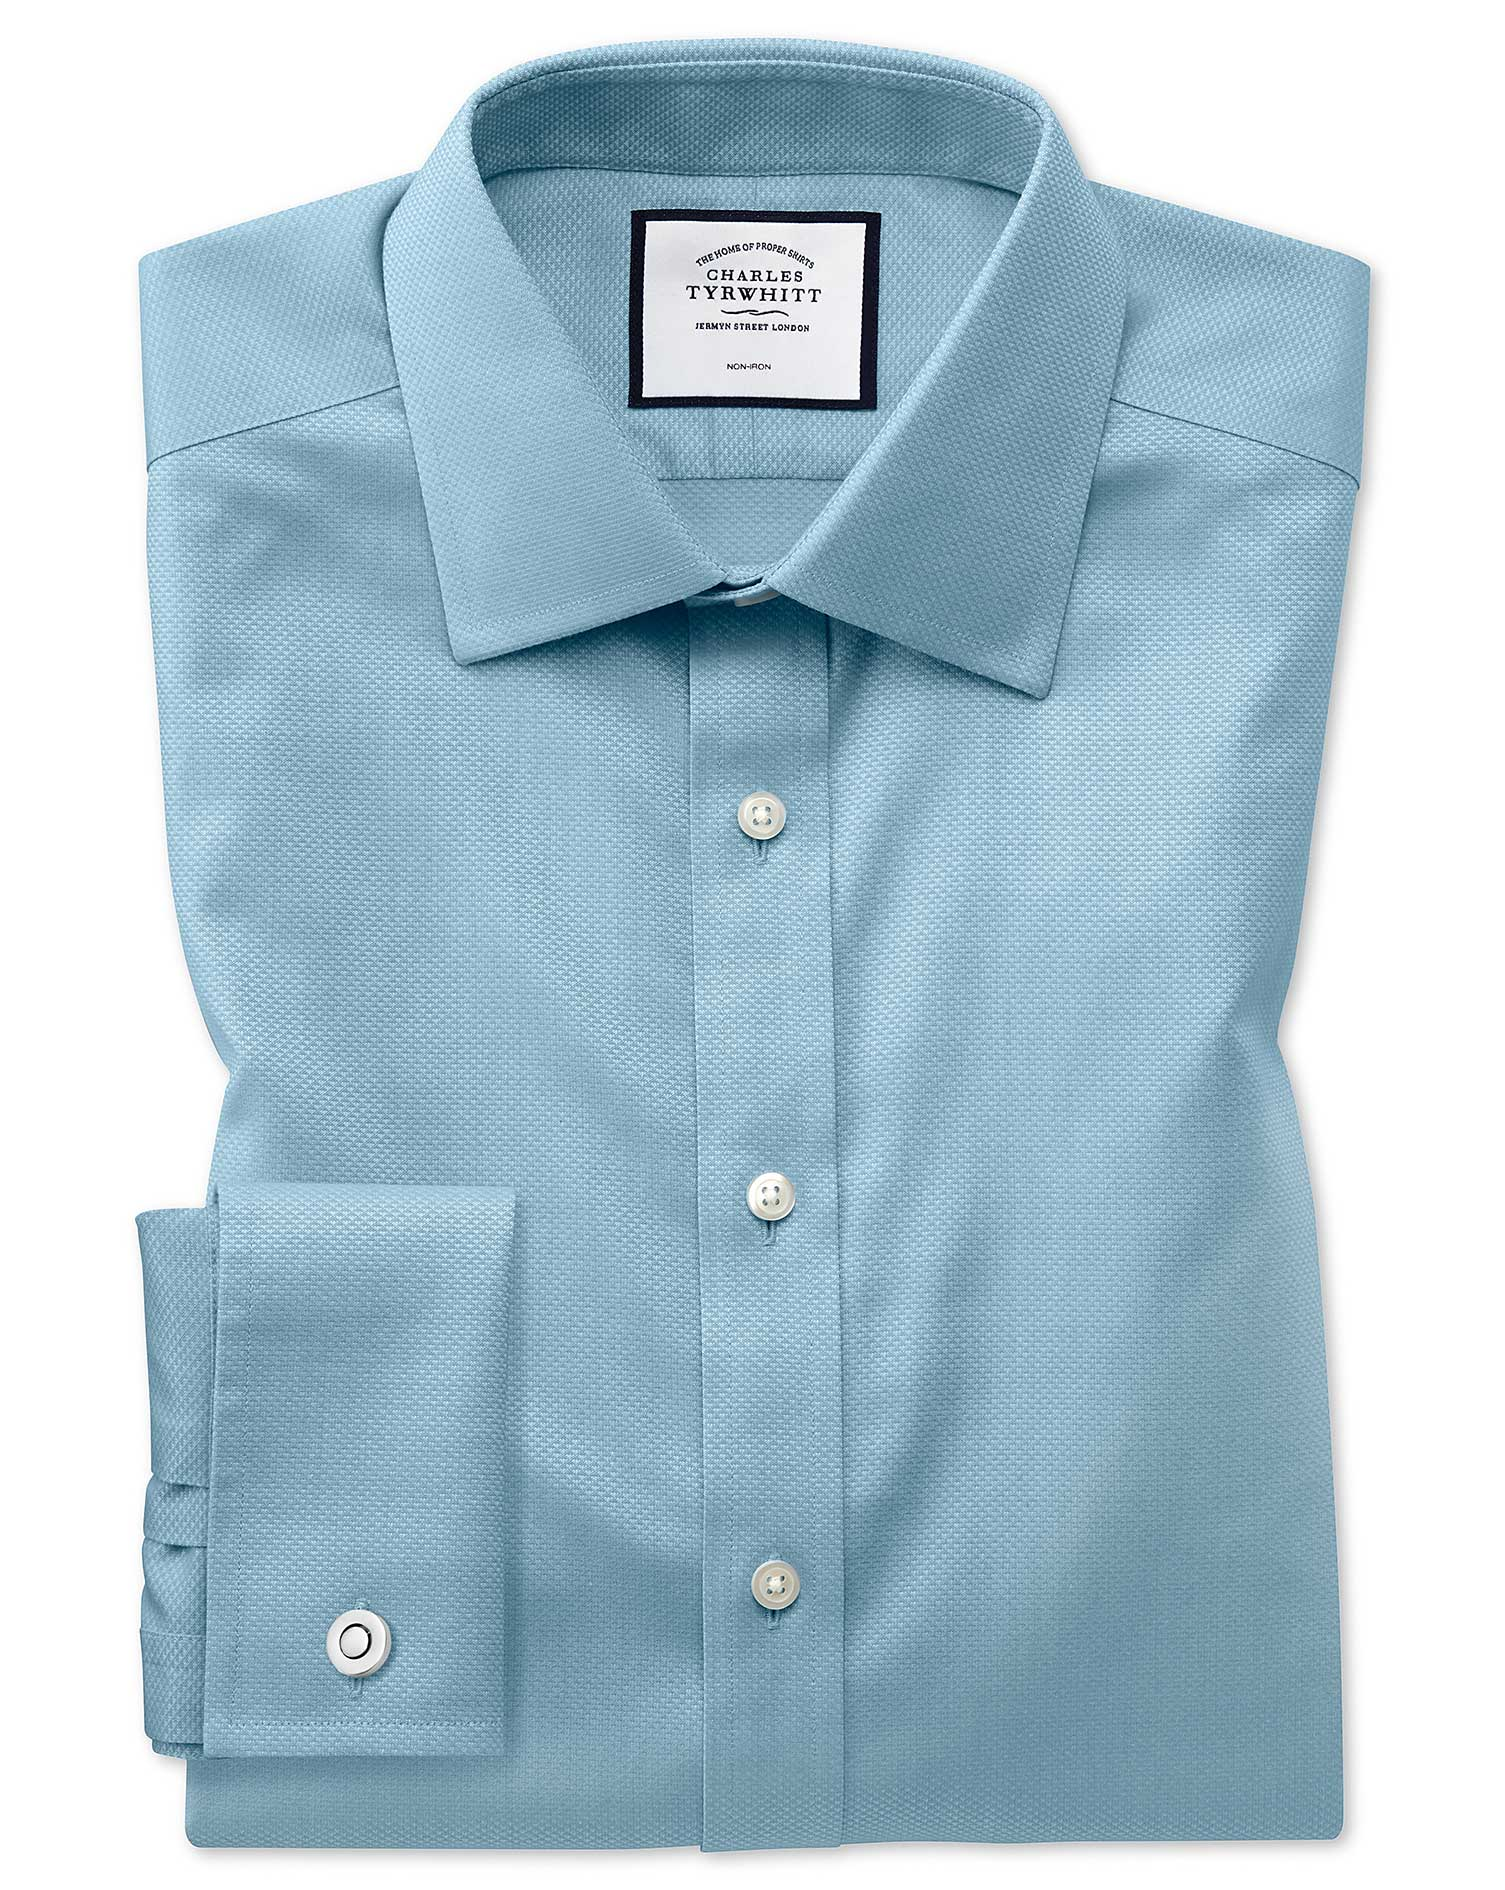 Extra Slim Fit Non-Iron Teal Triangle Weave Cotton Formal Shirt Double Cuff Size 16/34 by Charles Ty